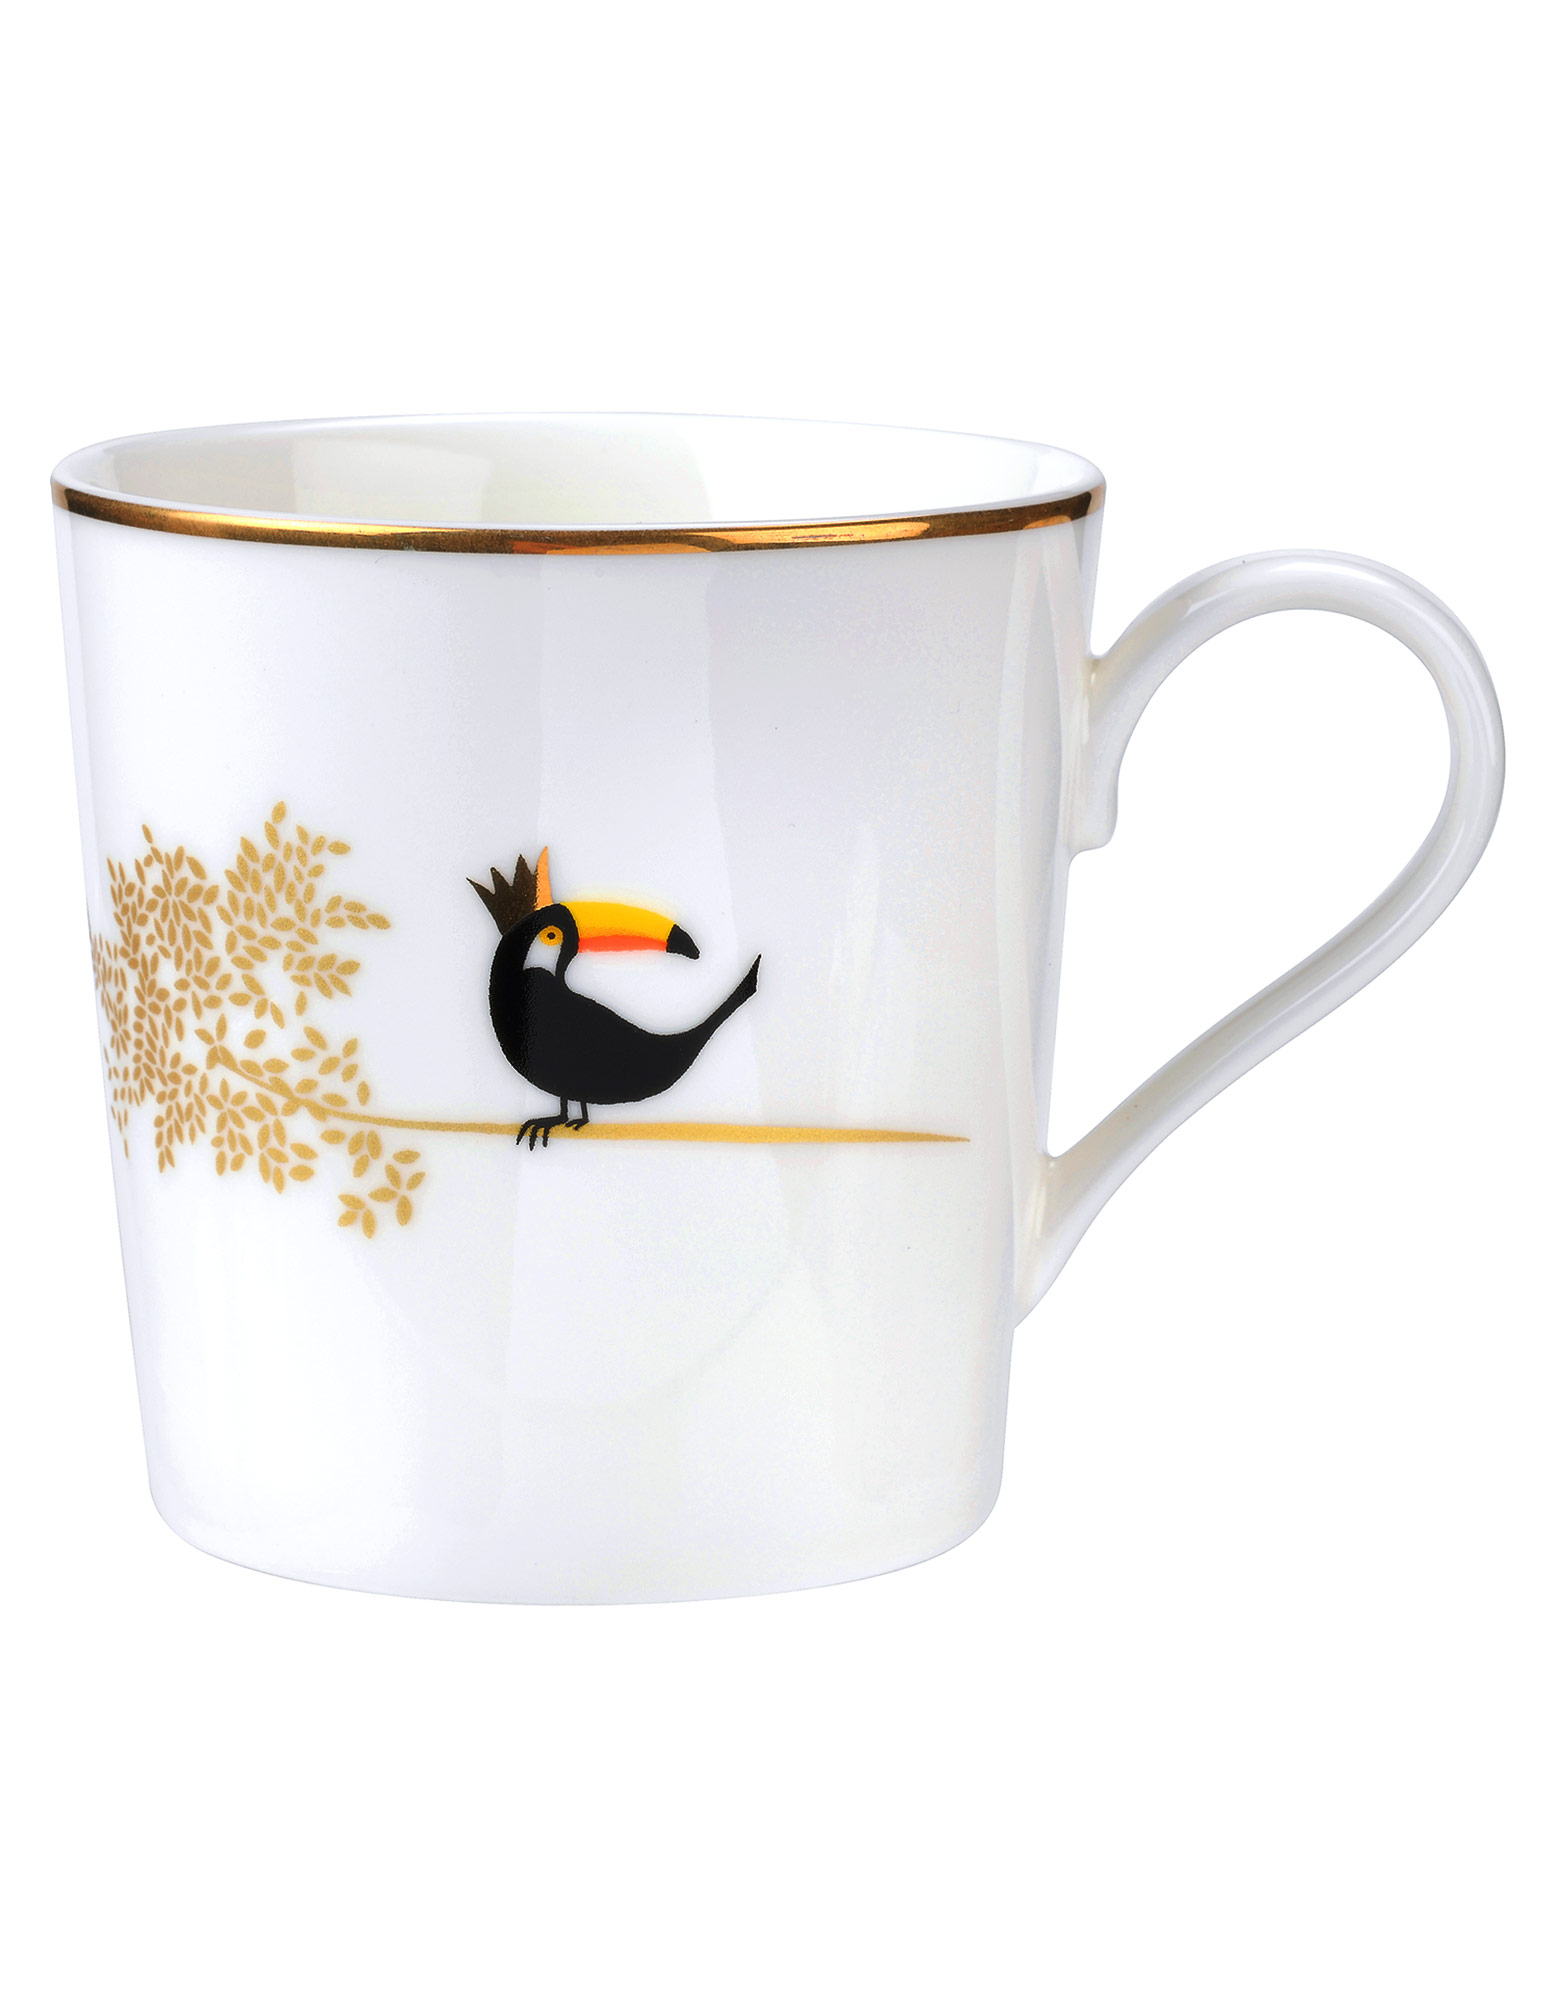 Sara Miller Piccadilly Terrific Toucan Mug 300ml